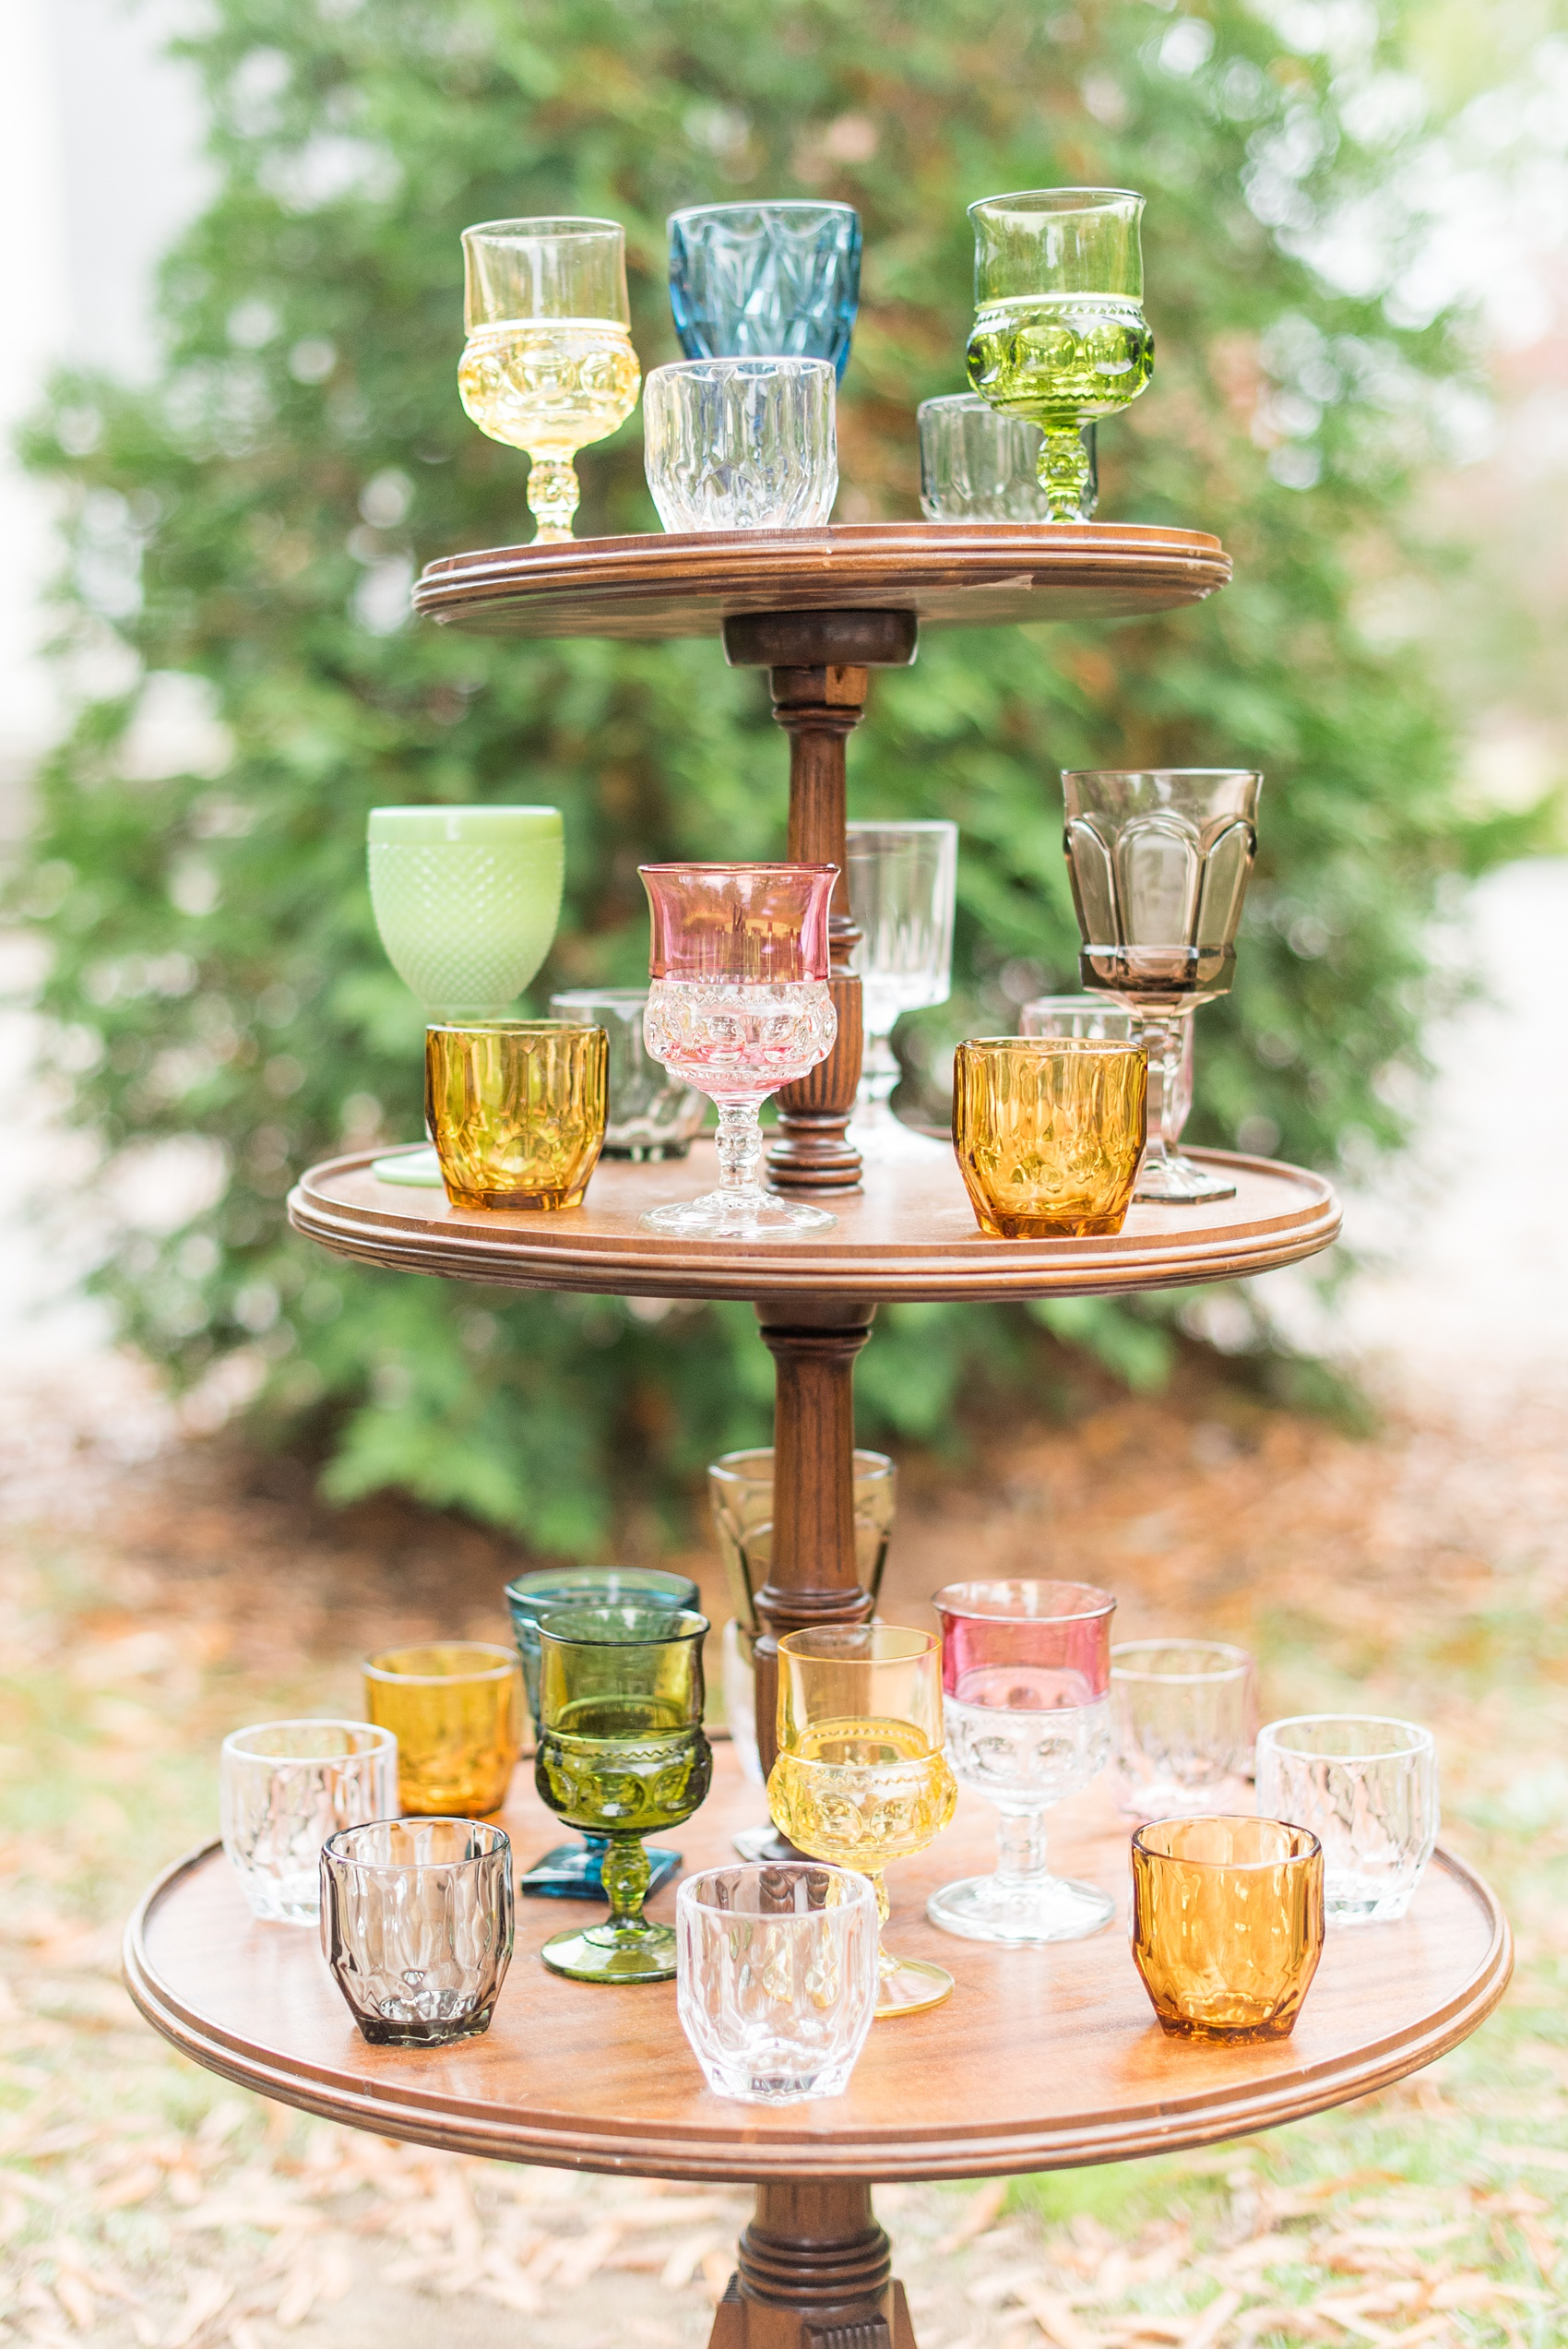 Mikkel Paige Photography photos from a wedding at Leslie-Alford Mims House in North Carolina. Picture of the mixed colored vintage glasses display.